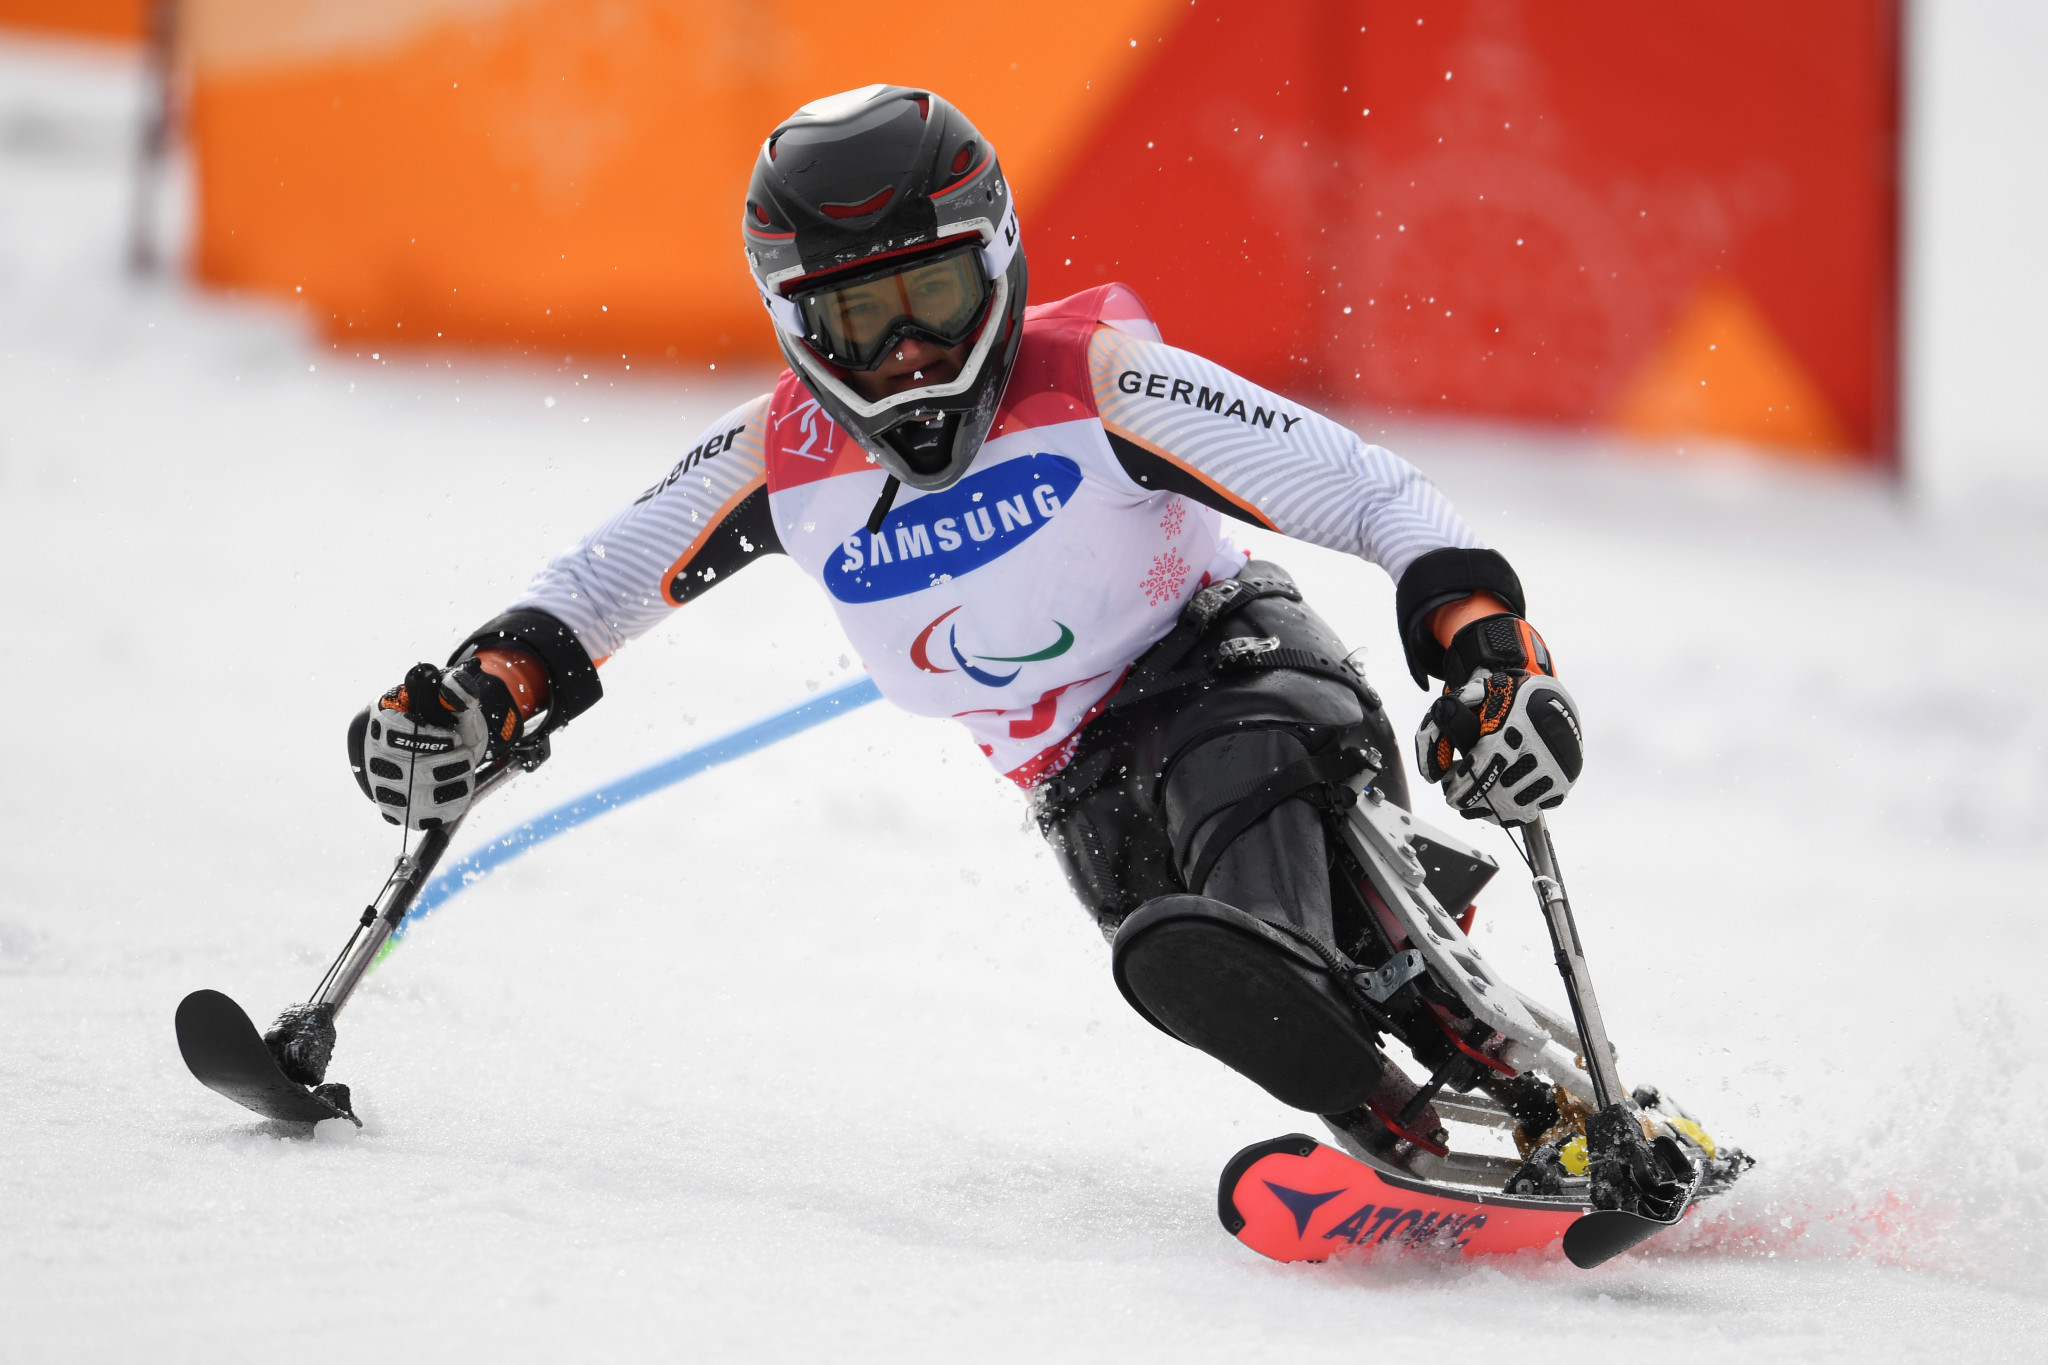 Para skier Forster balancing Beijing 2022 preparations with university studies